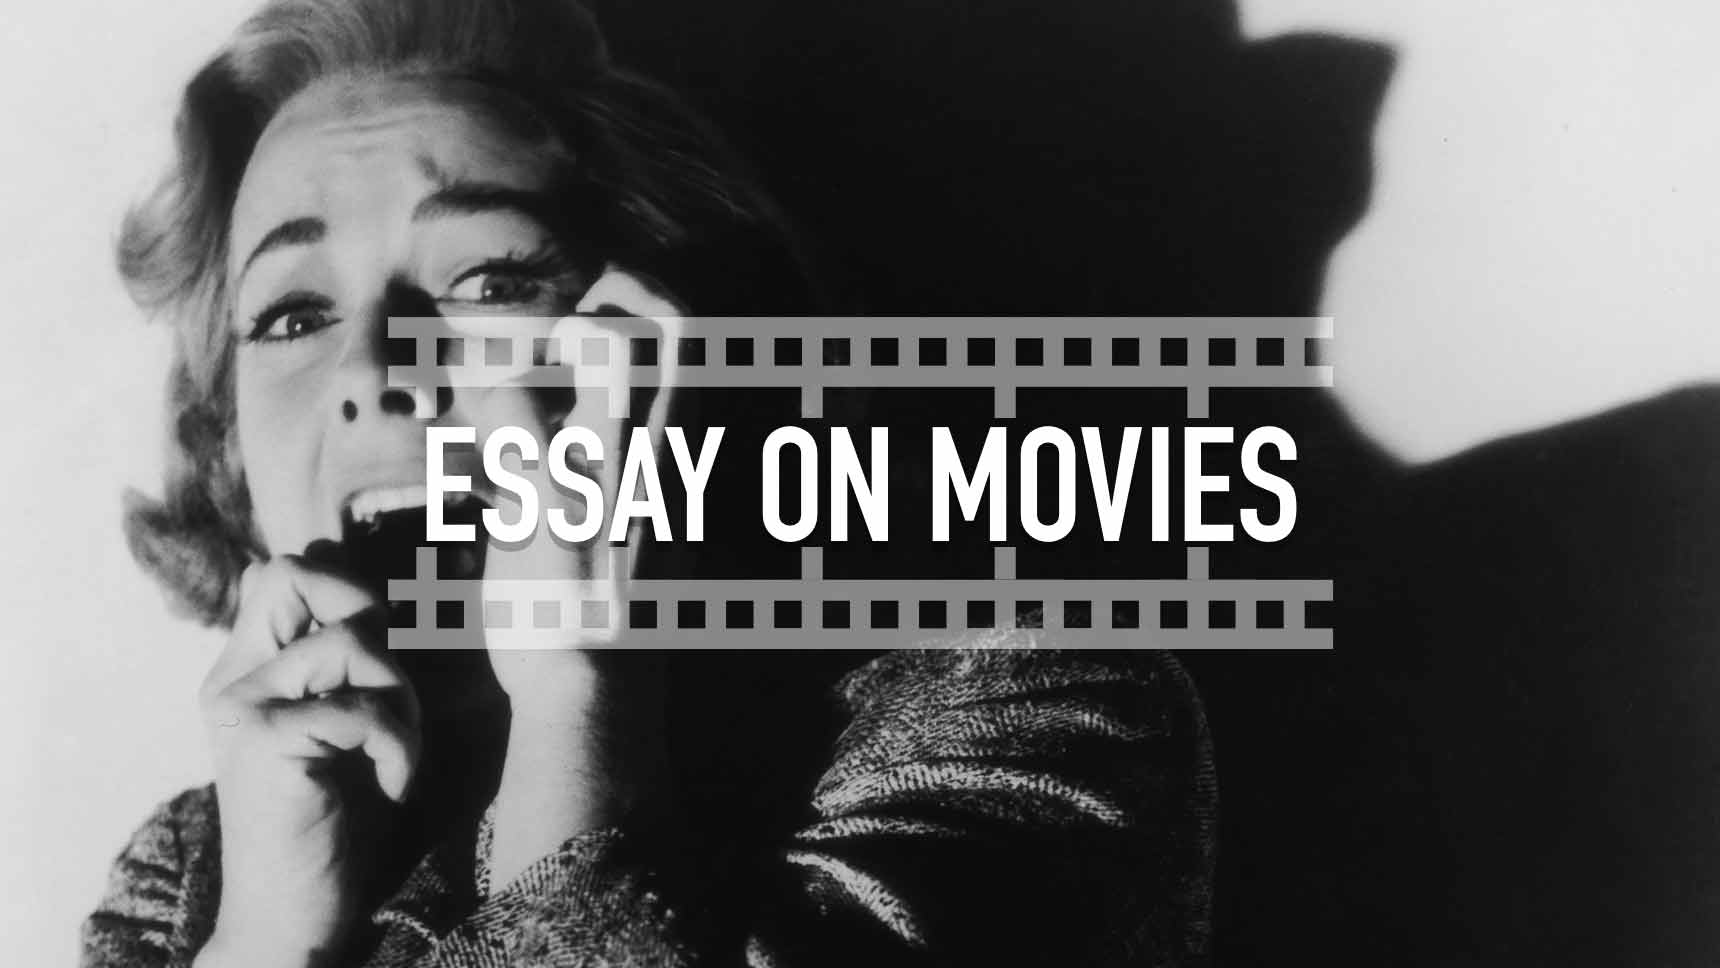 Essay on Movies: Topics, Outline, Tips